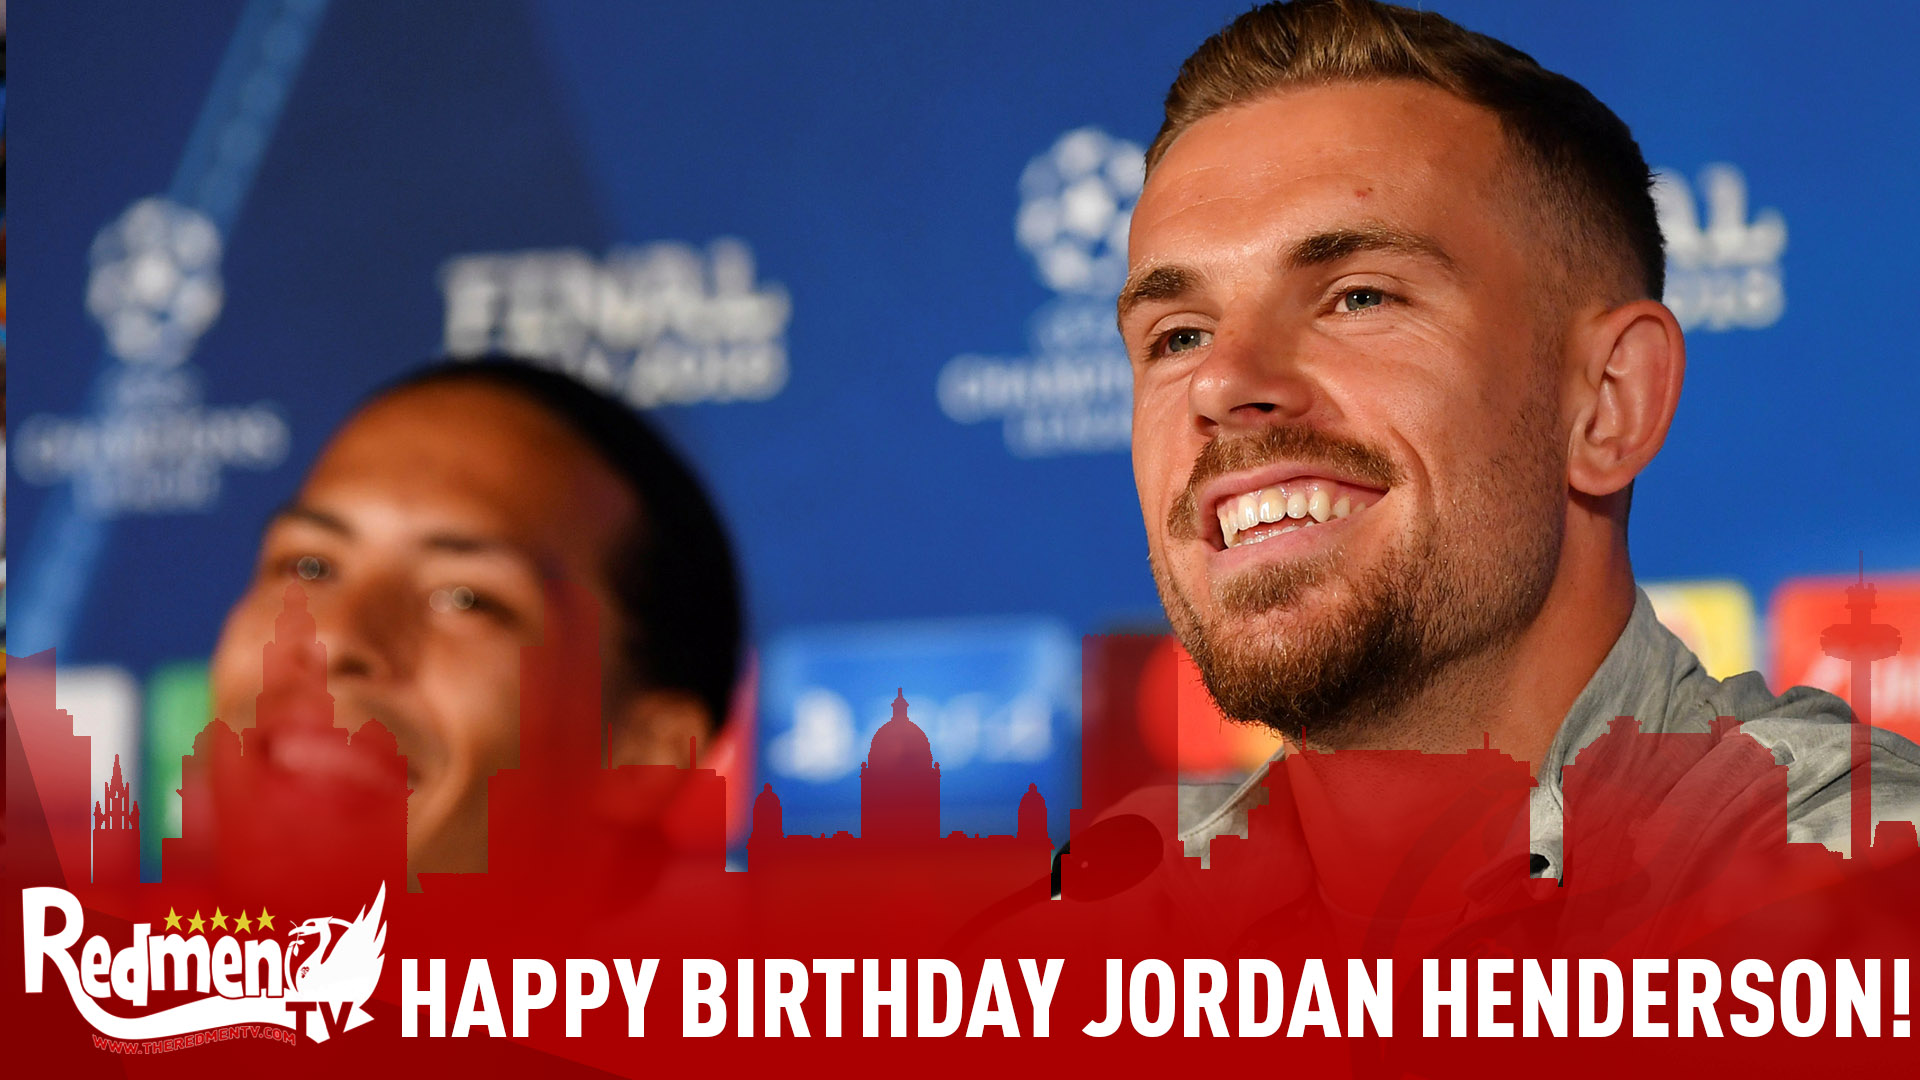 Happy Birthday Jordan Henderson!